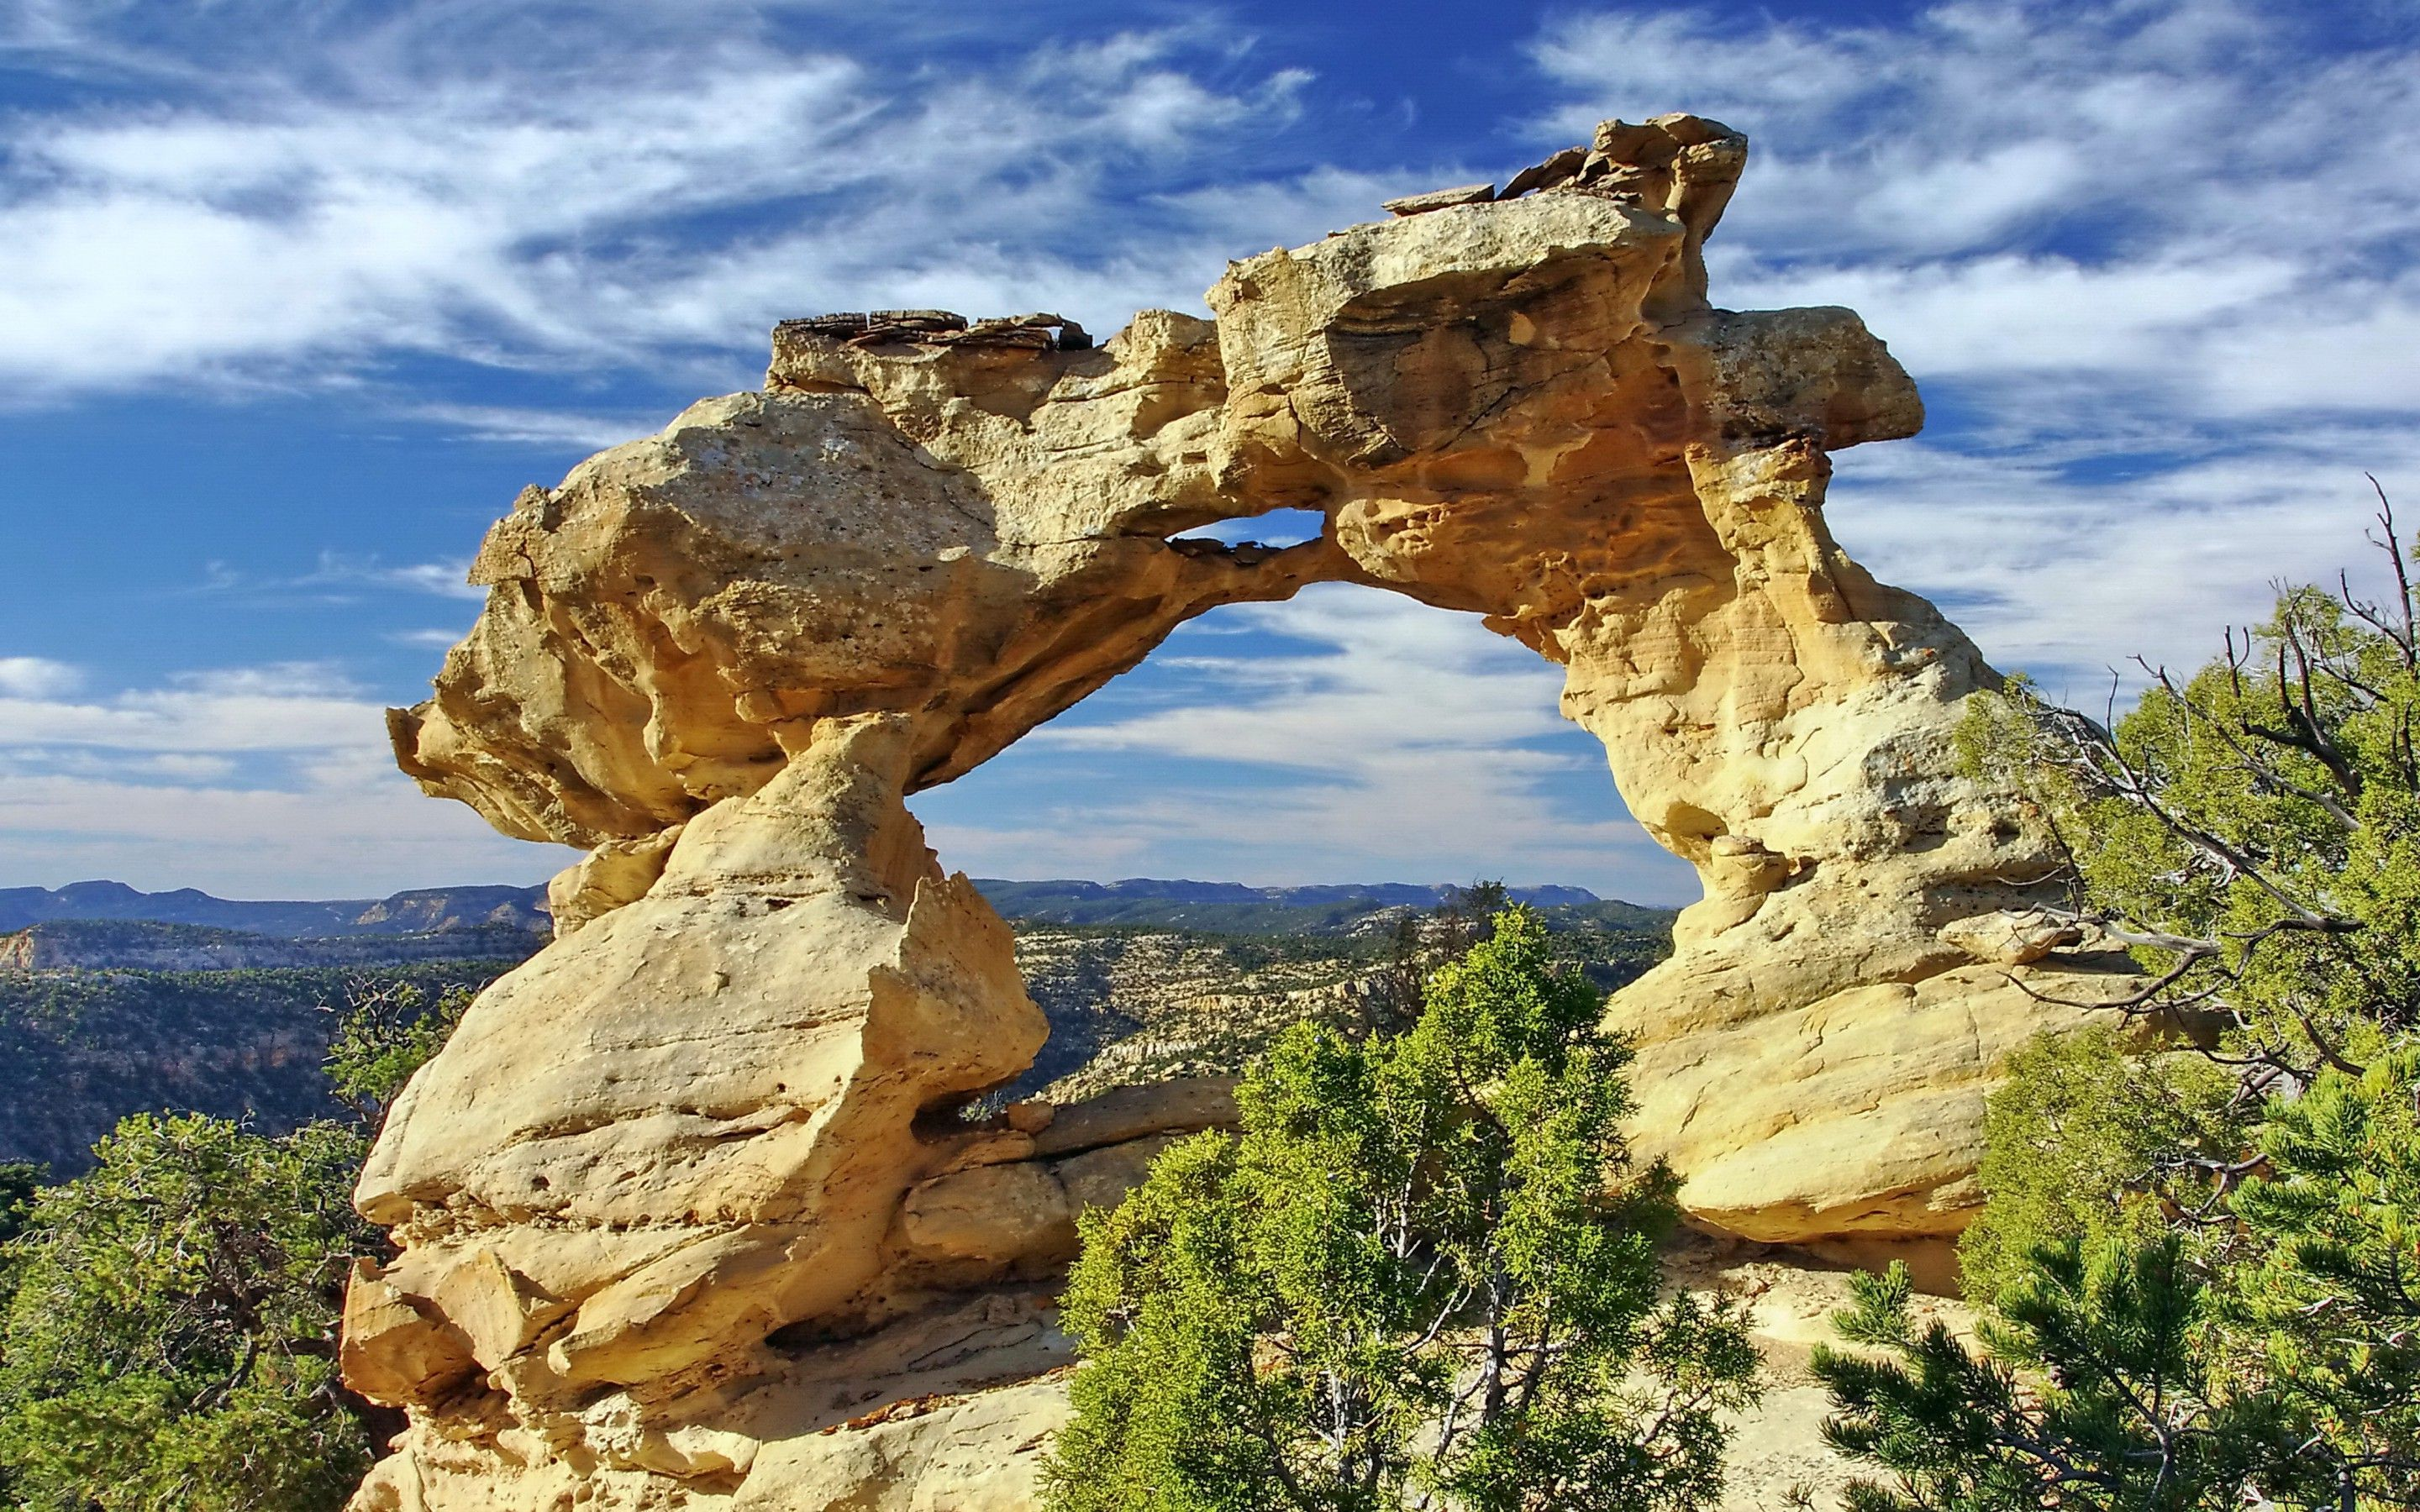 Arch Cliff Mountain Sky Cloud Nature 2880x1800 hdw eweb4 com 1000